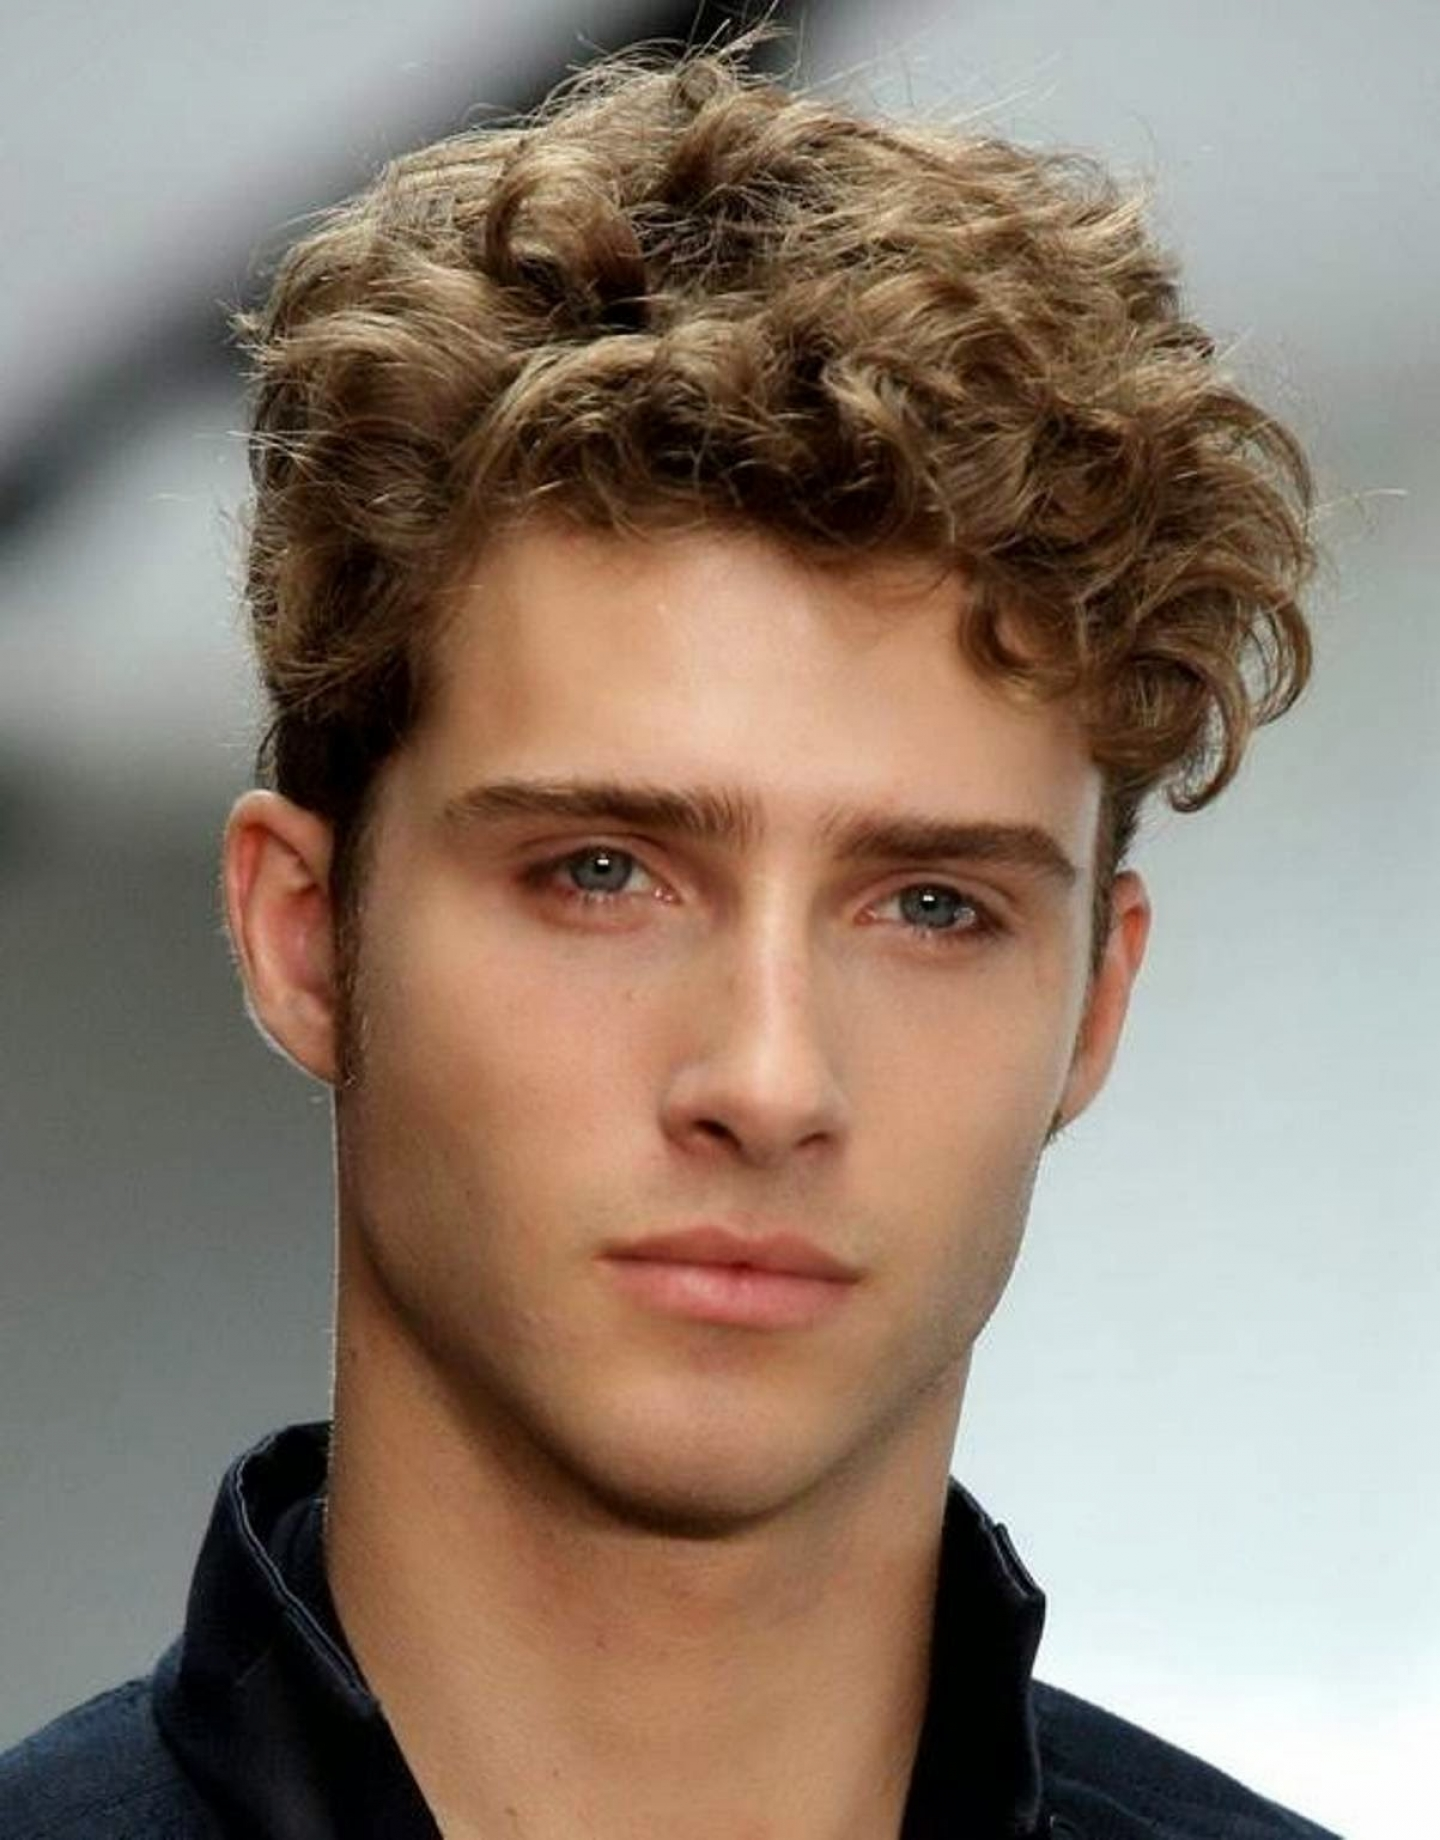 20 Mens Hairstyles Ideas with Pictures - MagMent